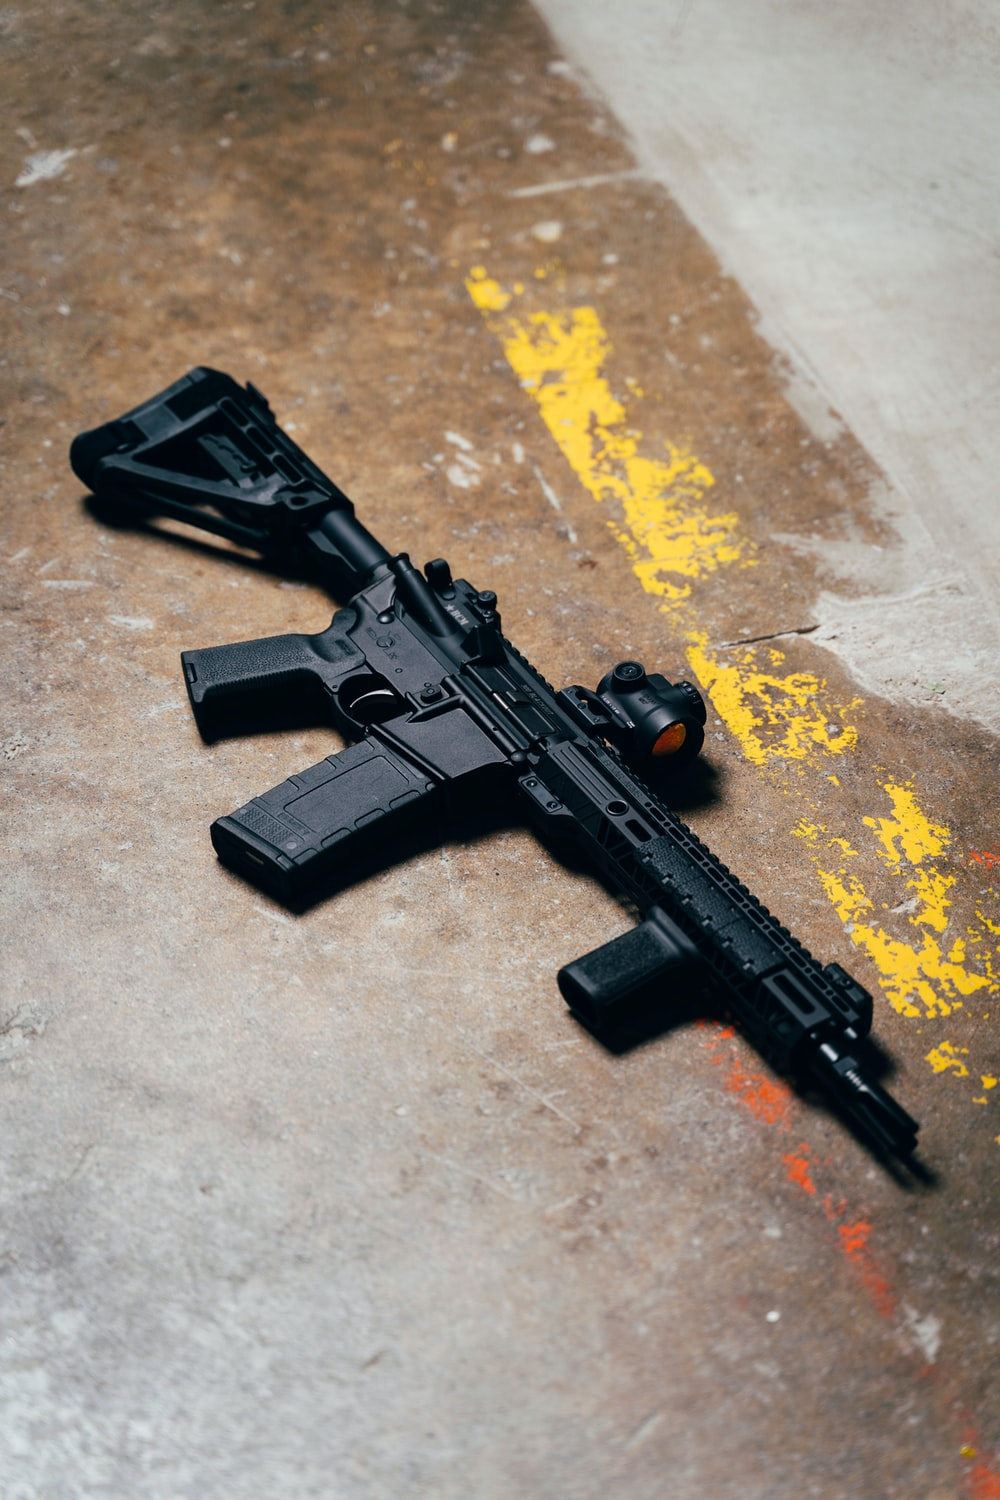 black rifle on brown and yellow surface